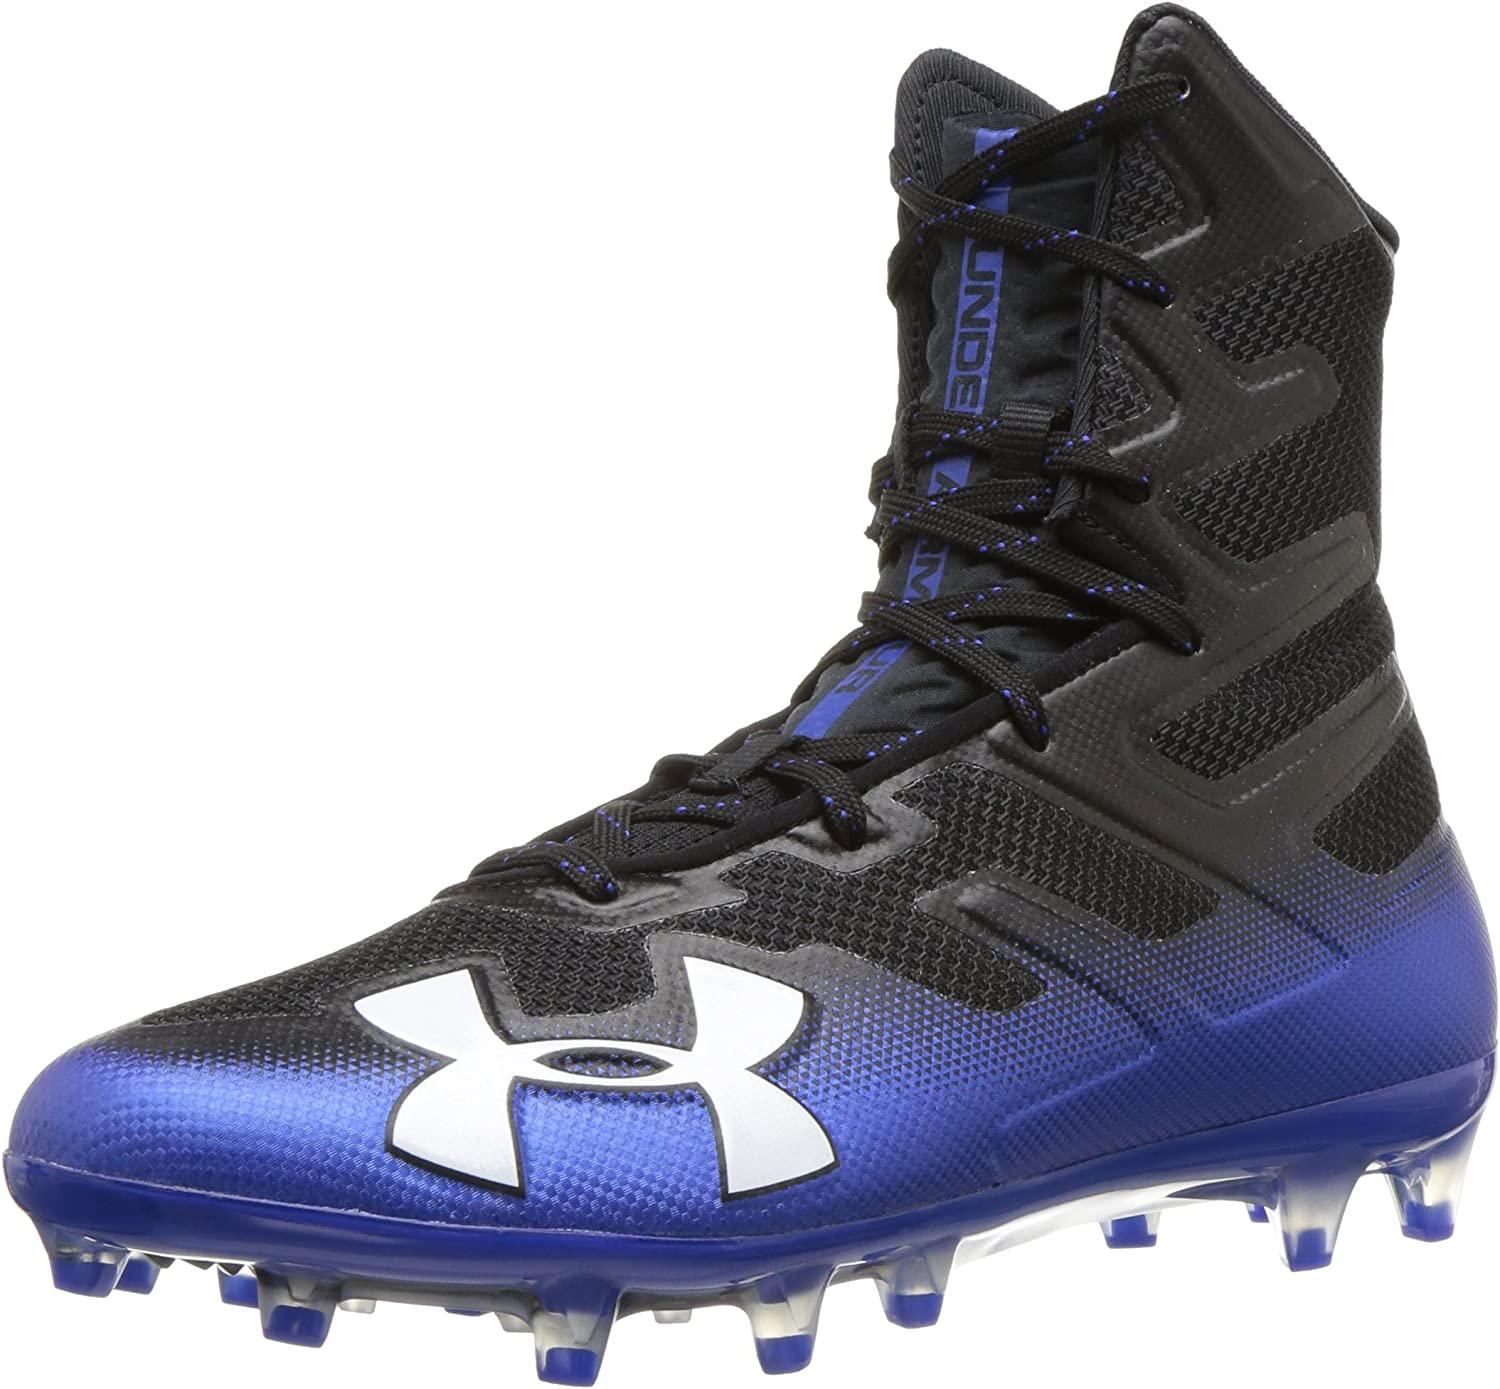 Under Armour Men's Highlight MC Football Shoe, 黒 (006)/Team Royal, 6.5